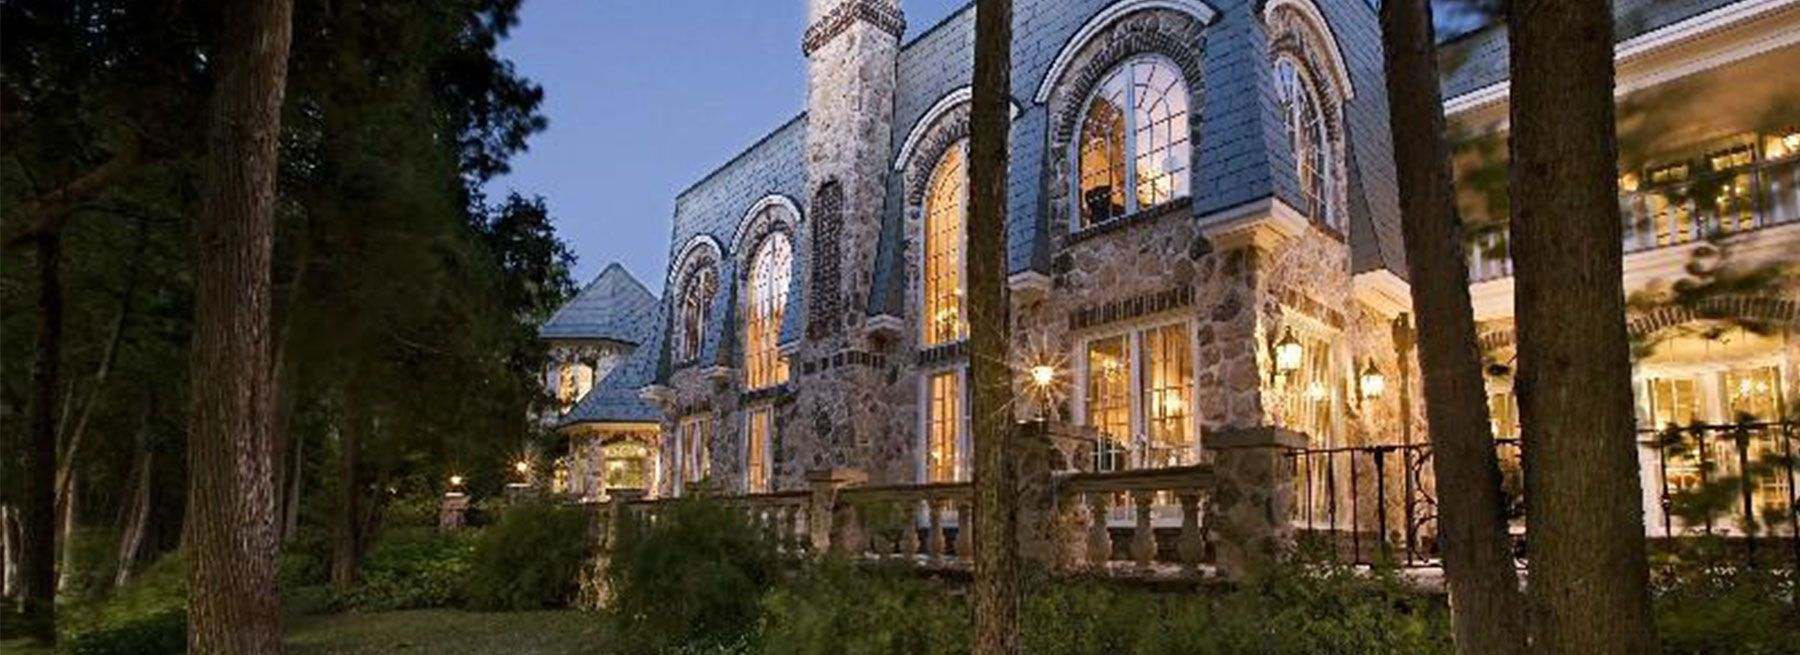 Property of the Week: Great Lakes Mansion, for less than